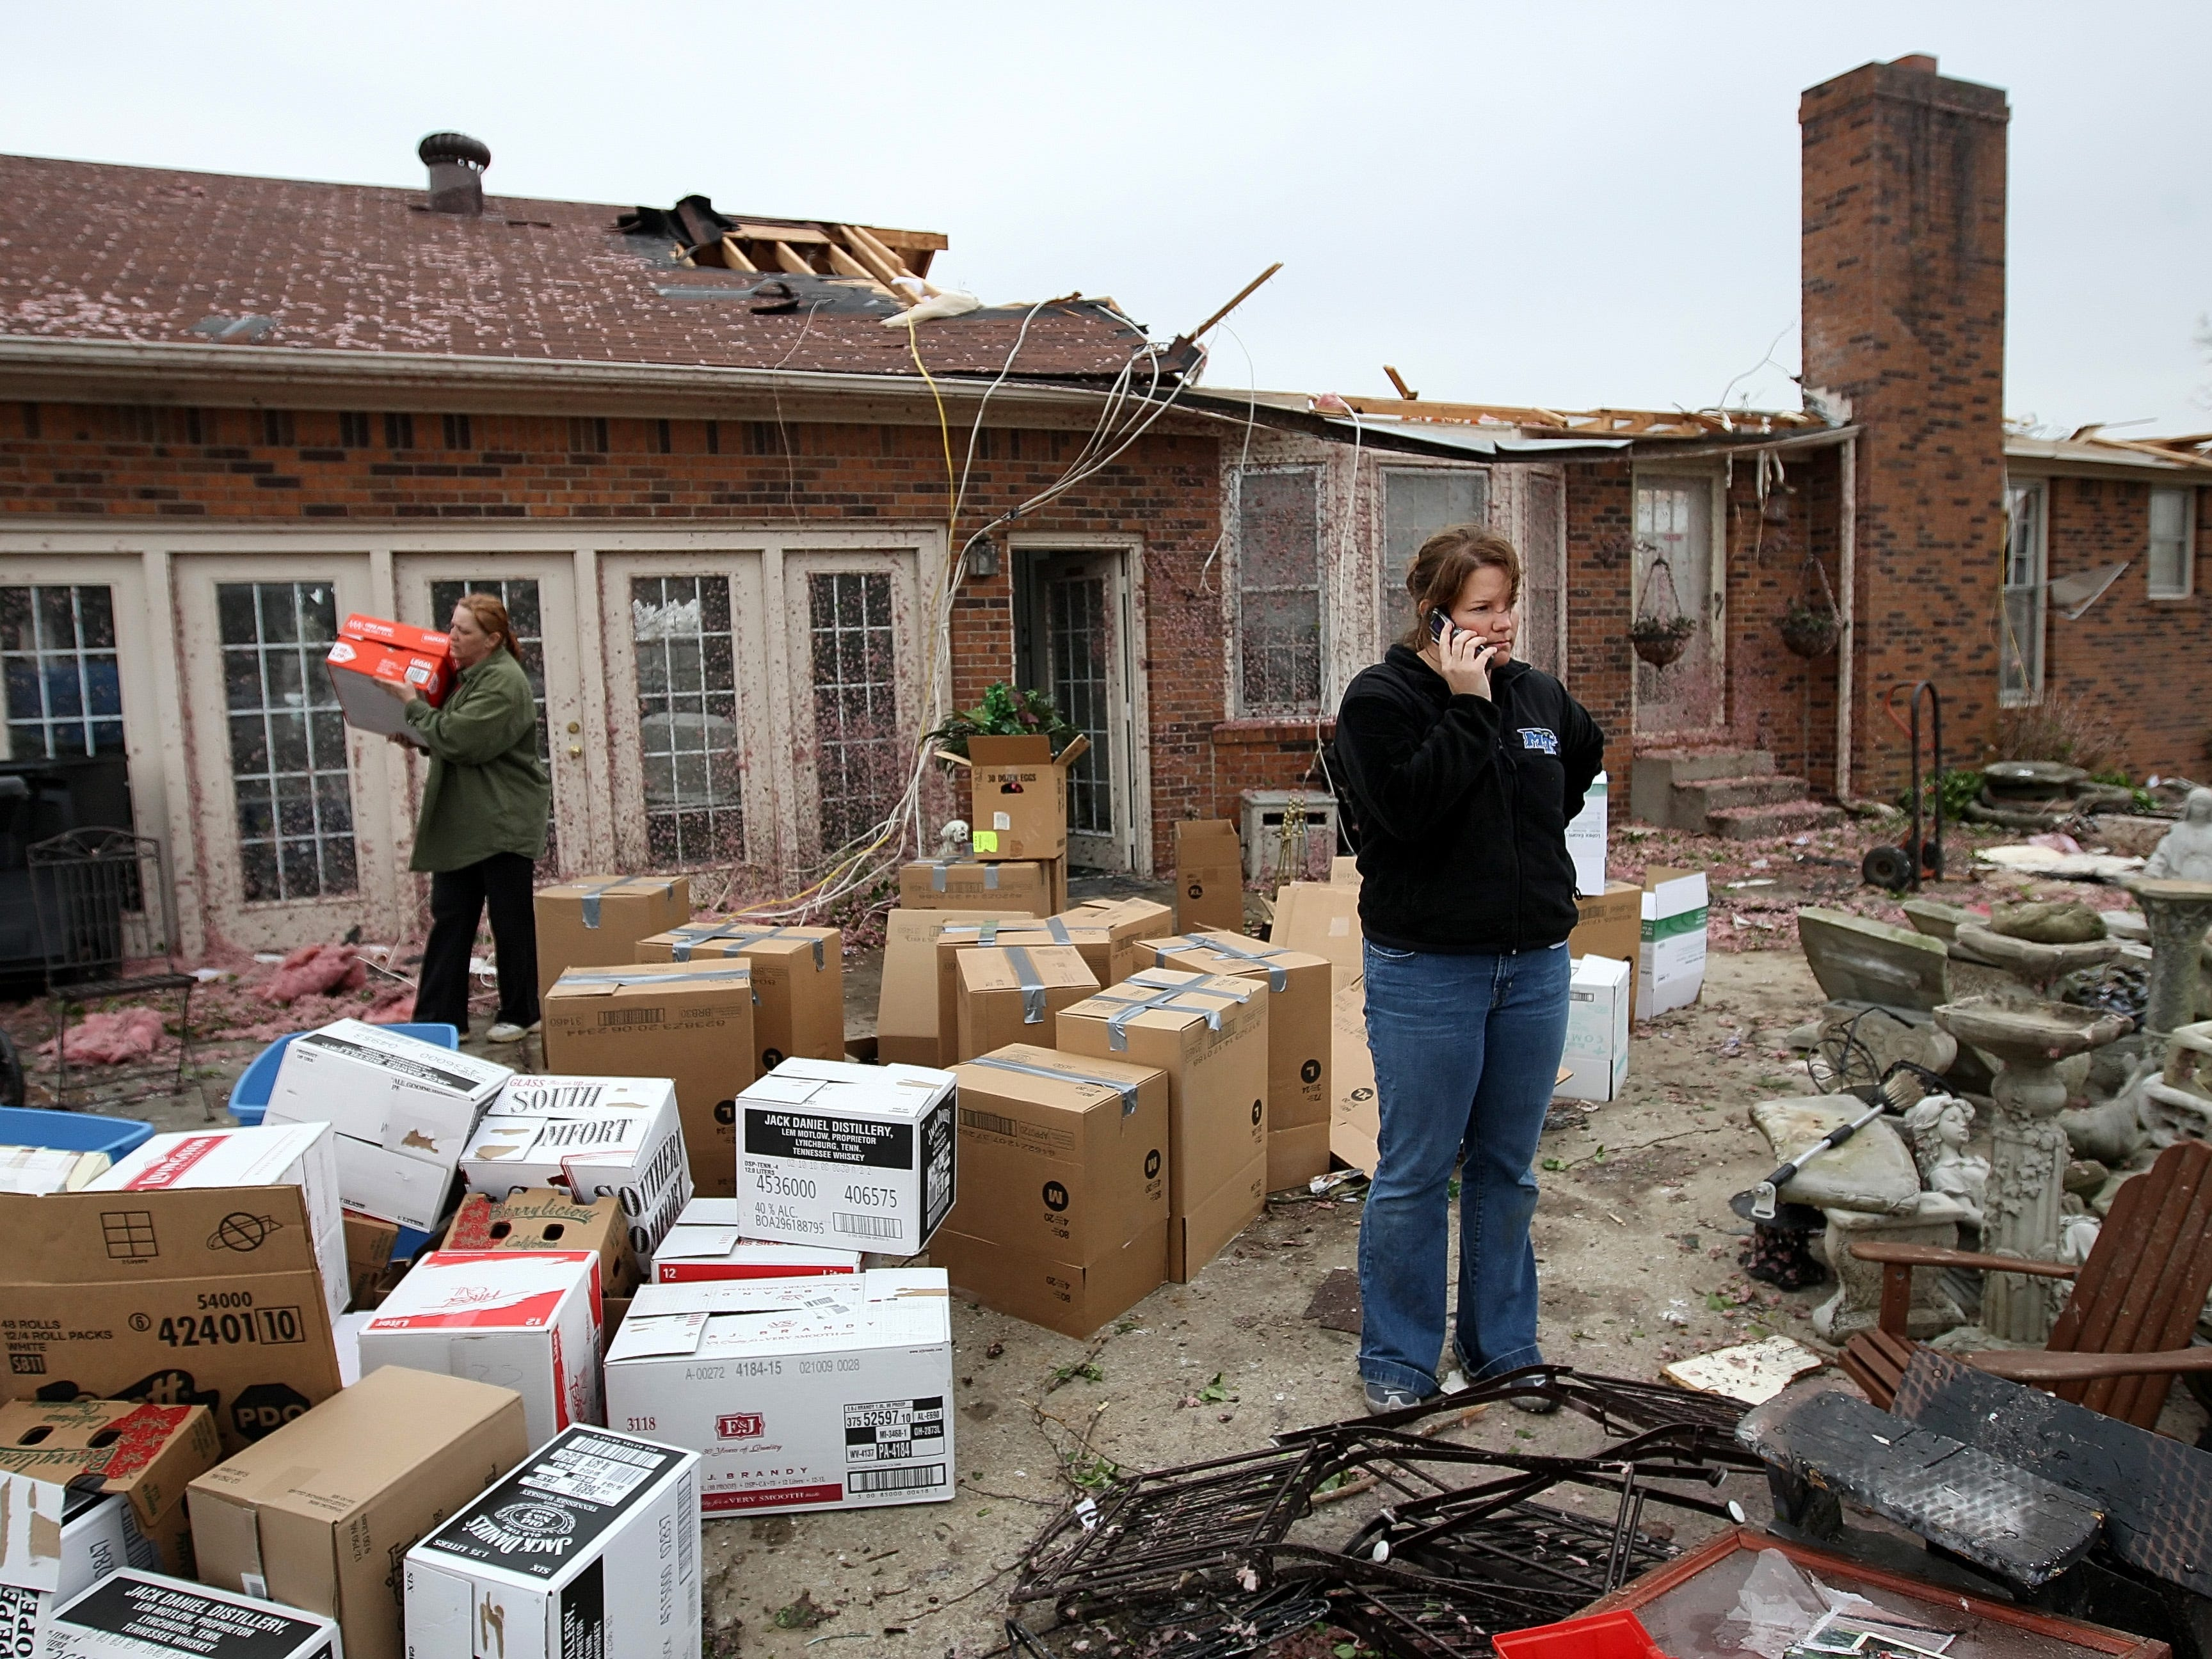 Jaymie Owen, right, talks on the phone while helping to box up her Grandparents belongings after their home was badly damaged in Murfreesboro, Tennessee on Saturday April 11, 2009. (Josh Anderson for The Tennessean)